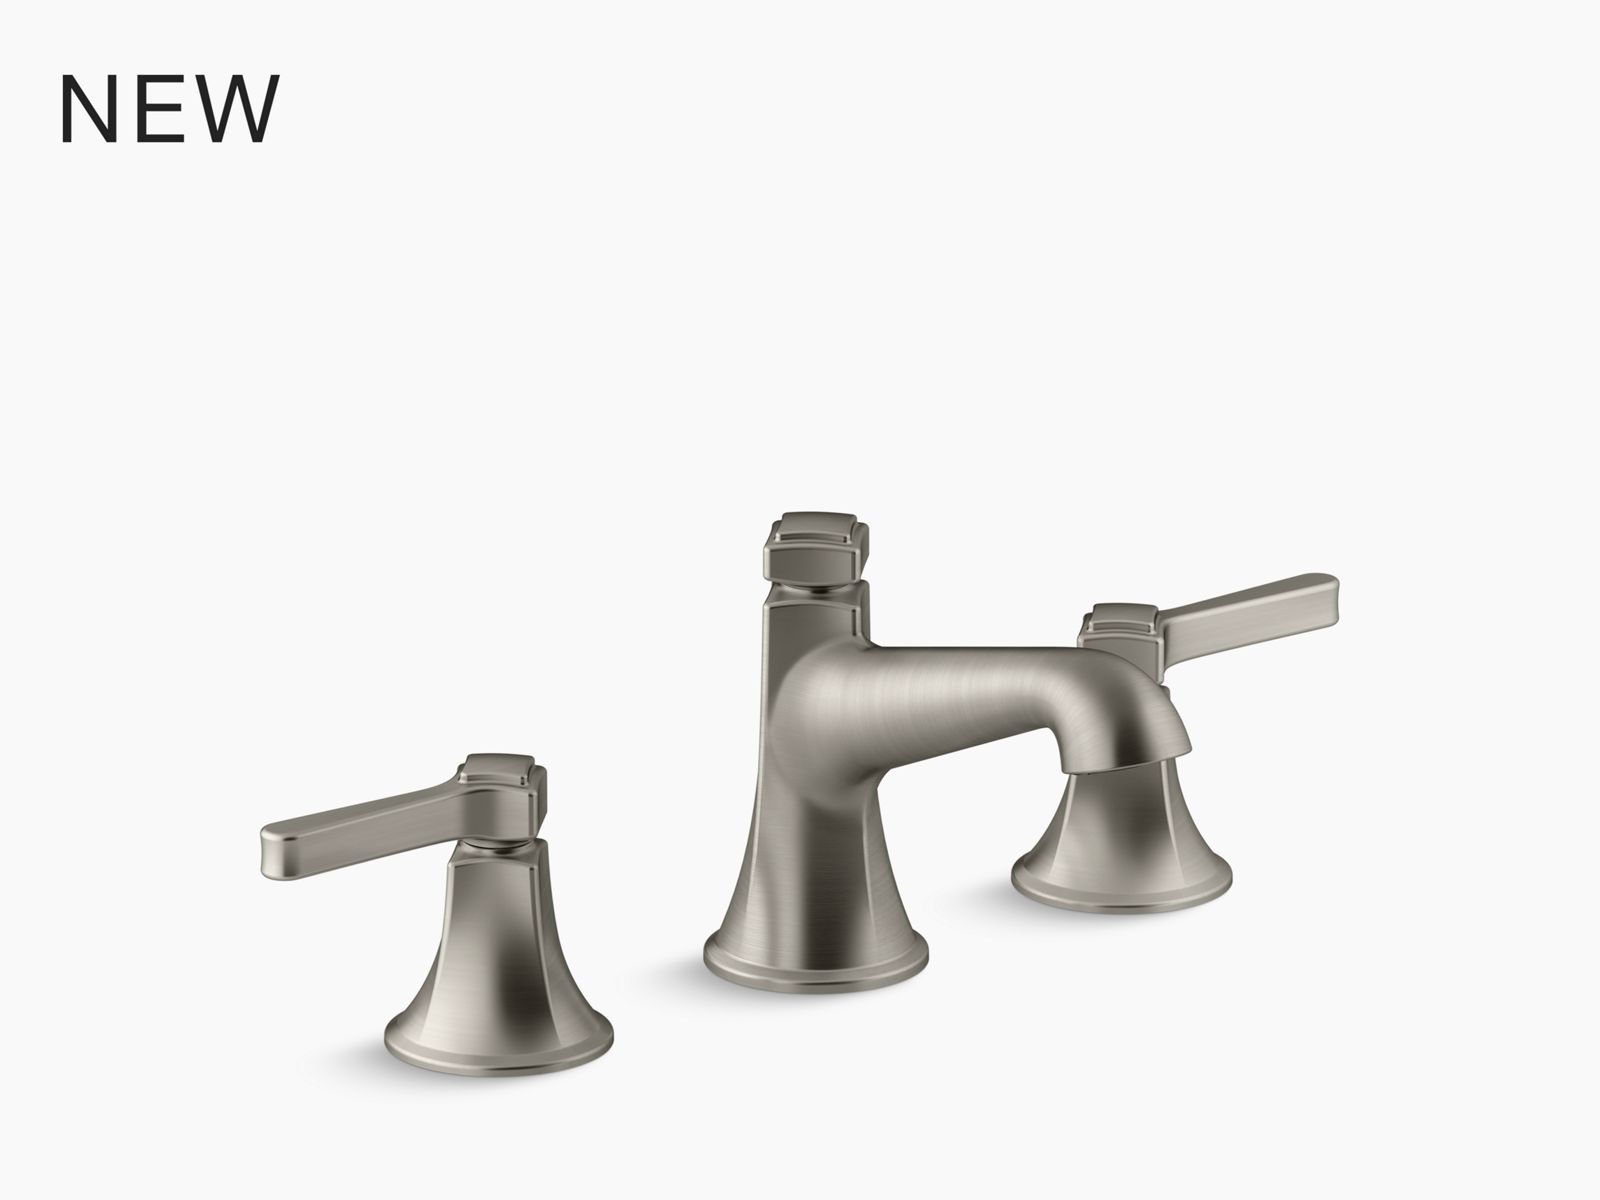 purist wall mount touchless faucet trim with 35 degree spout